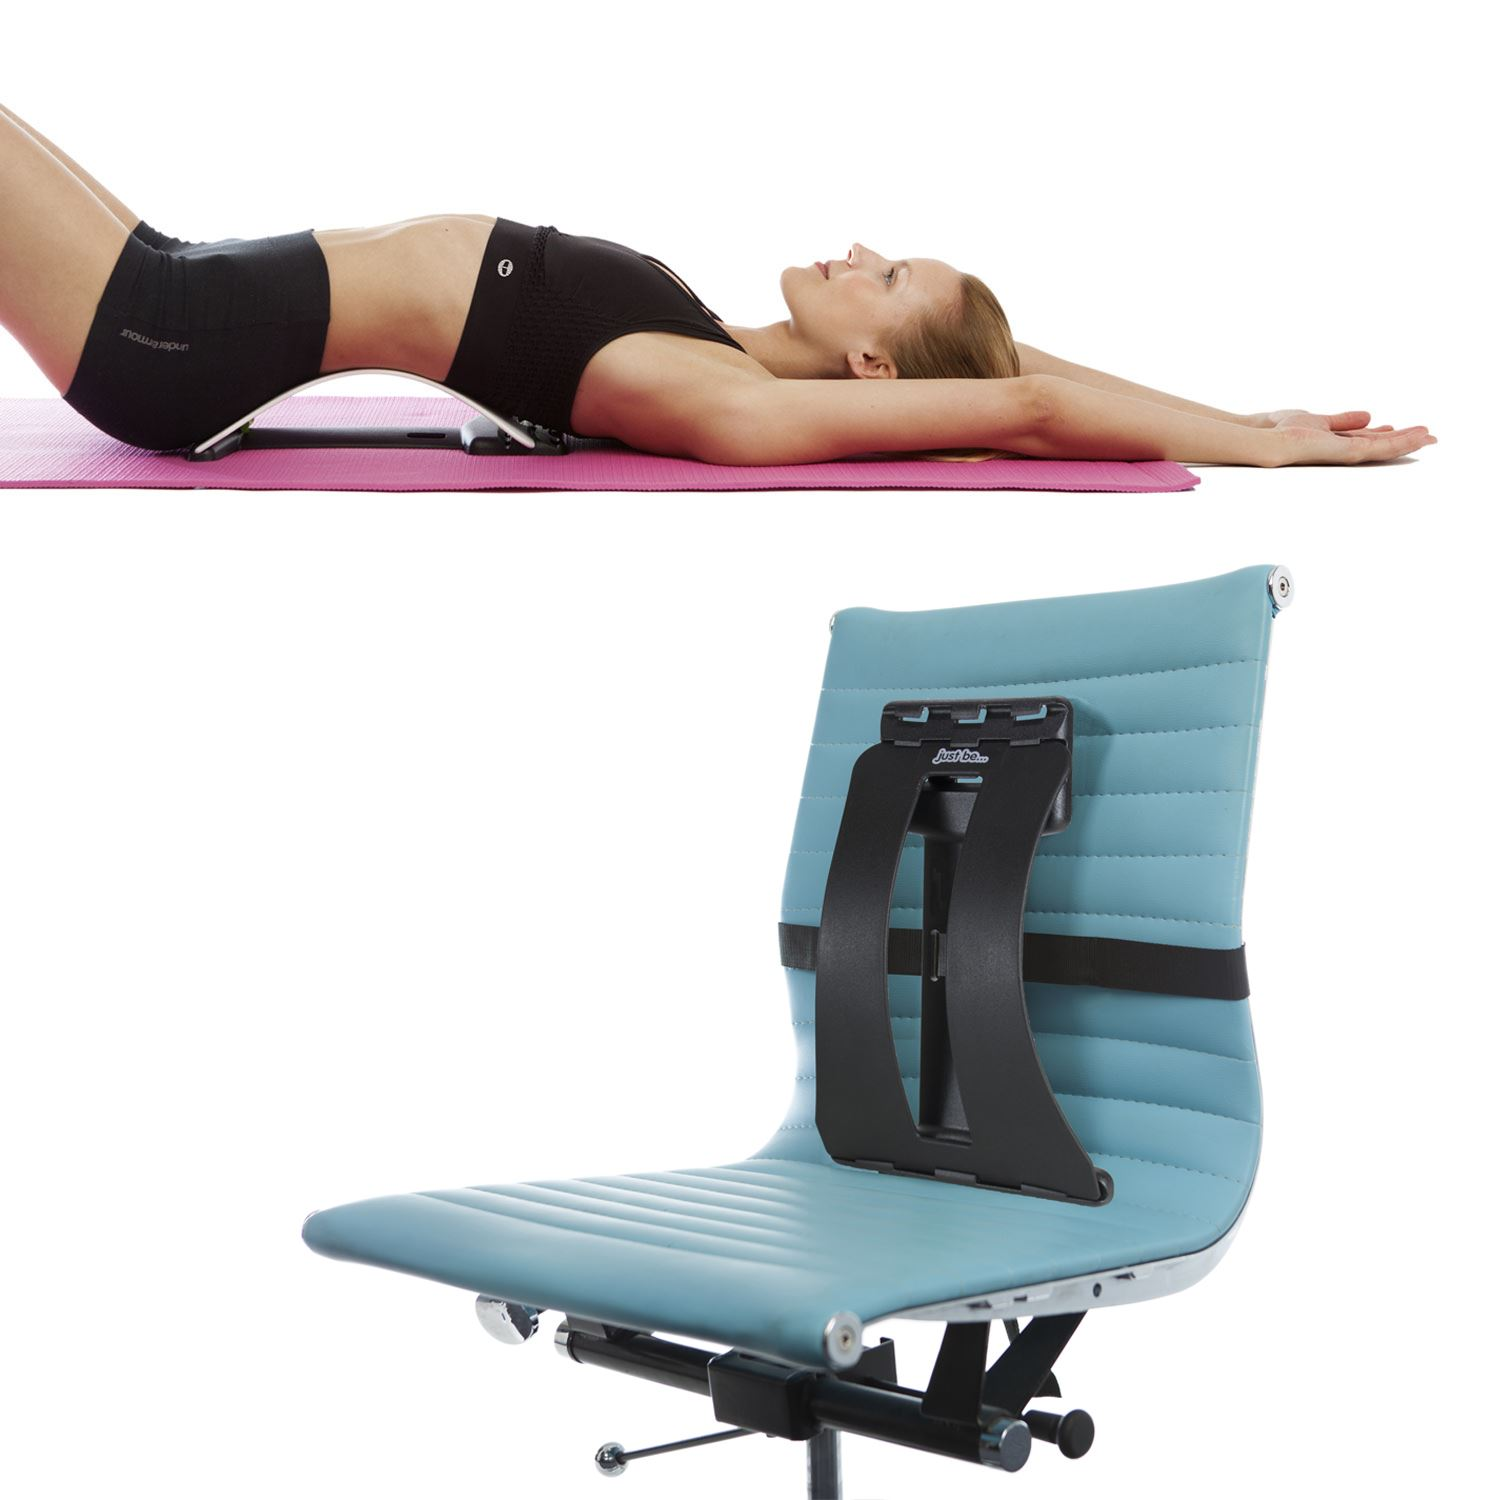 posture corrector office chair folding exercise back magic support stretcher lower